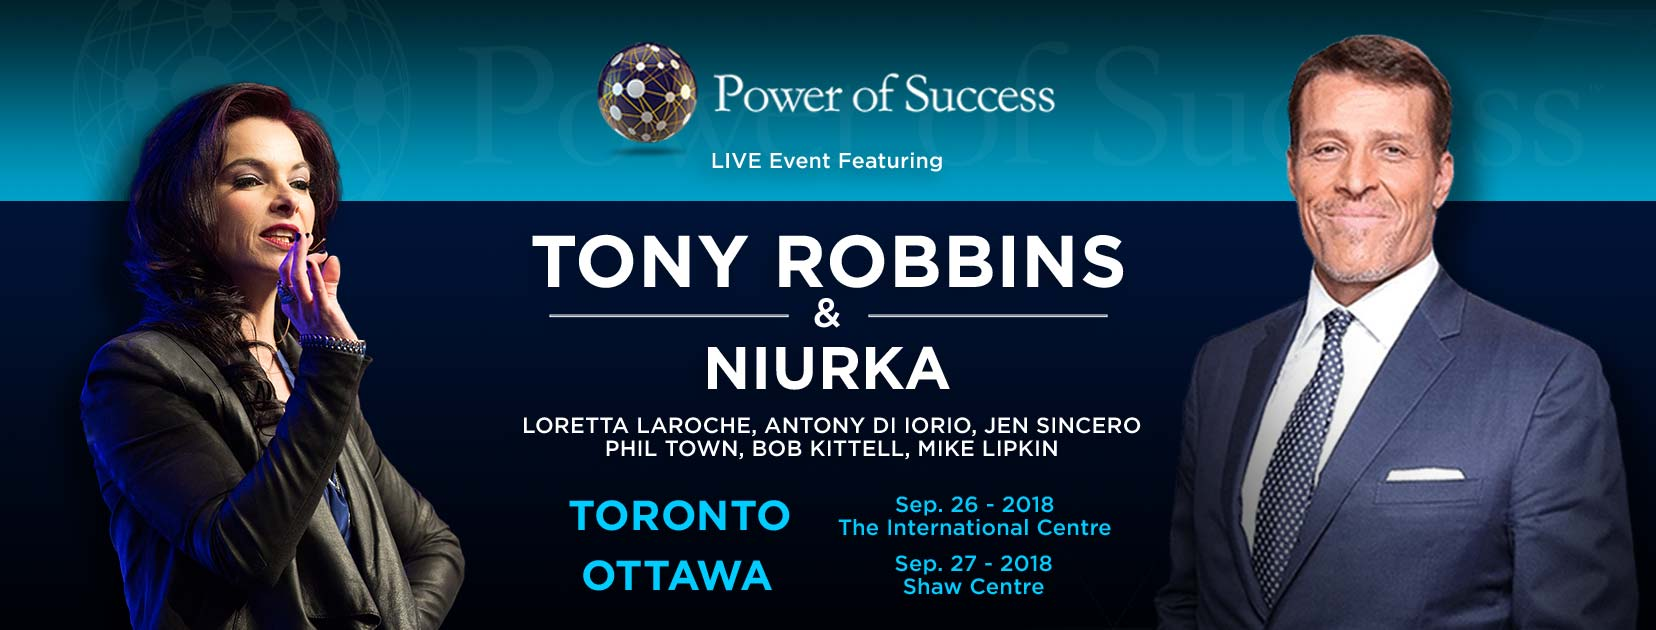 Power of Success Event